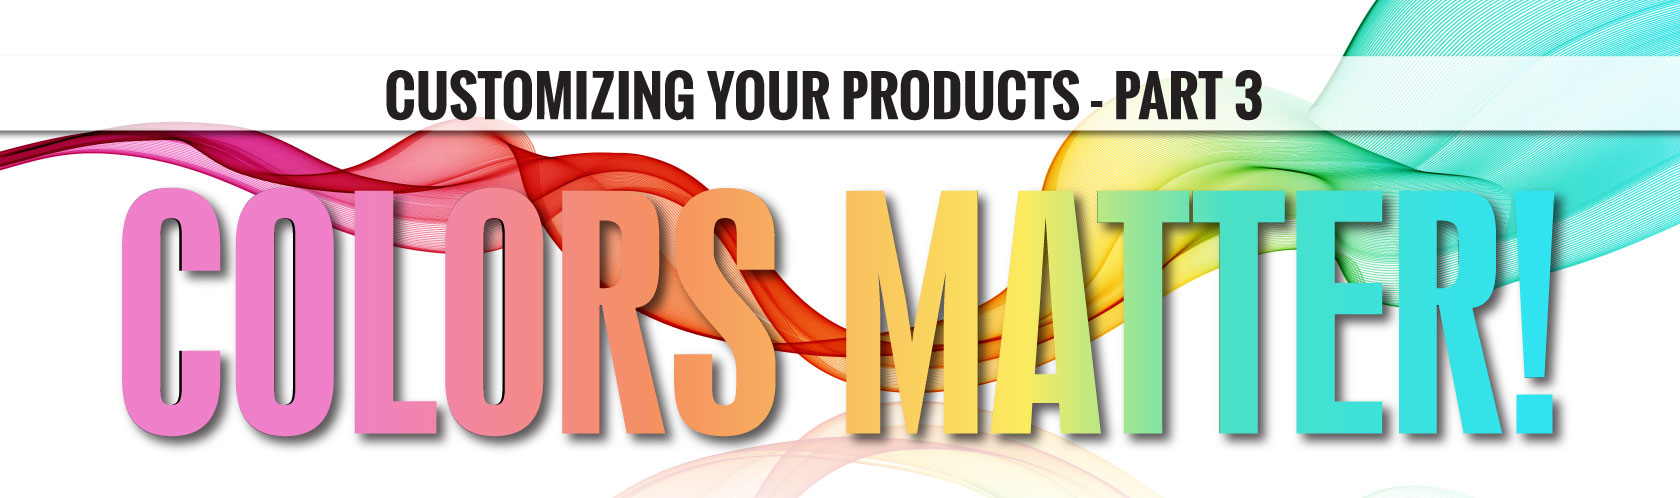 Customizing Your Product Part 3: Colors Matter!